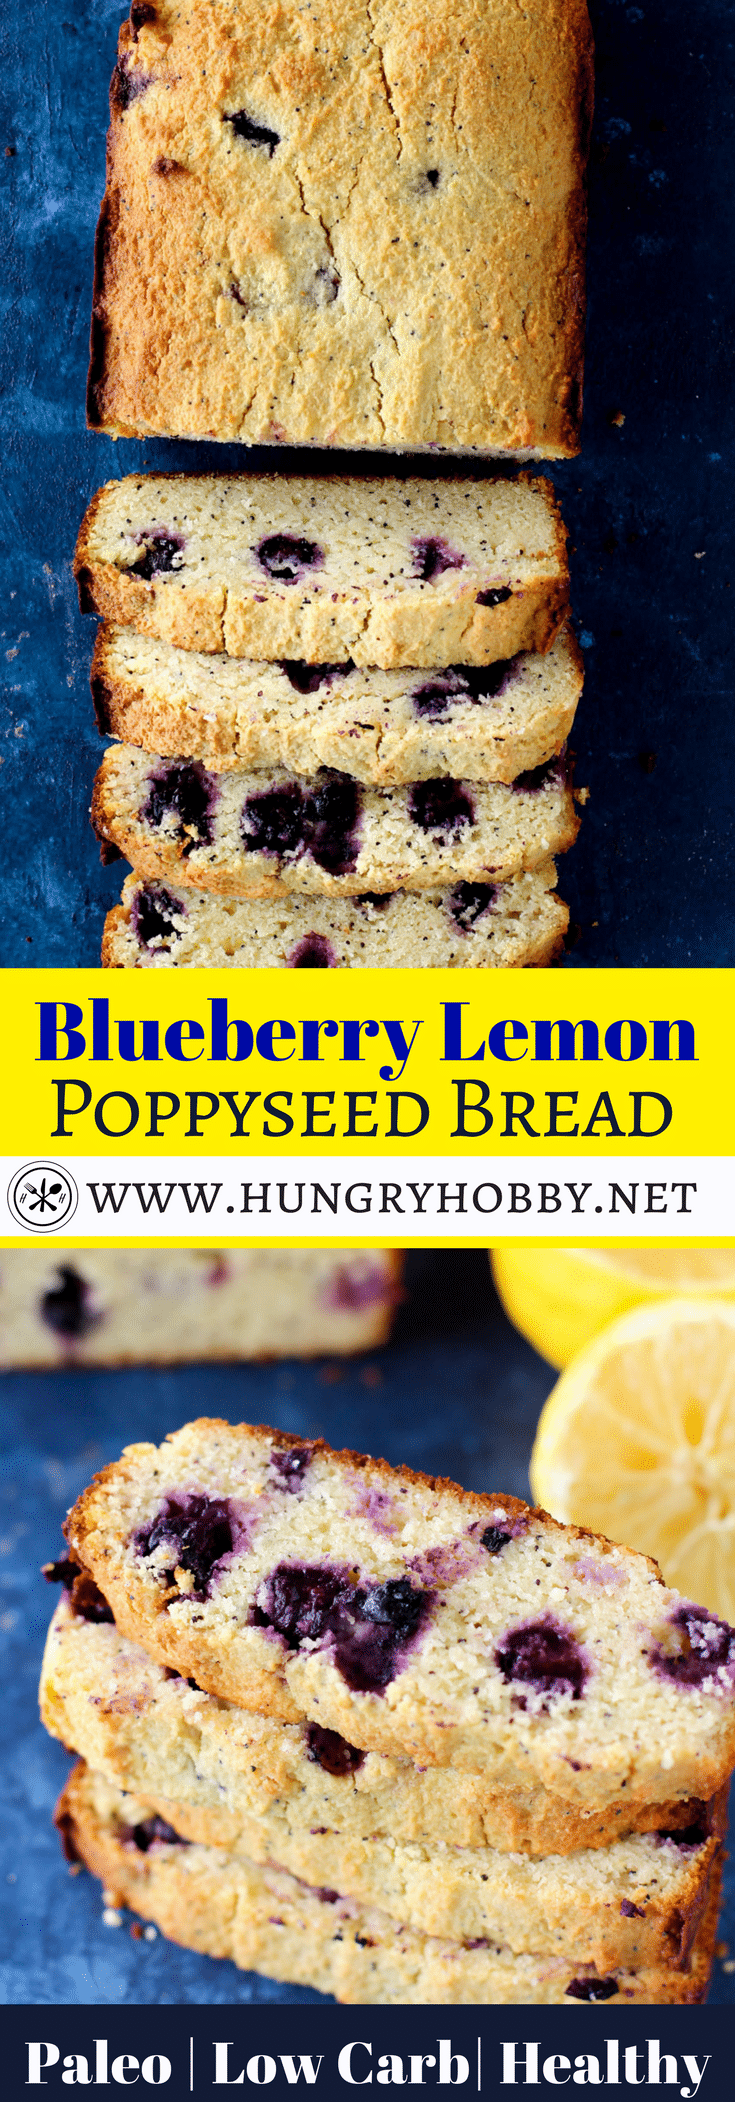 This #healthy blueberry lemon poppyseed bread is moist, bursting with warm blueberries, and exploding with lemon flavor, you'd never know it's healthy! I ate it for both breakfast and snacks, the perfect grab and go healthy sweet treat! #glutenfree #paleo #healthy #hungryhobby #dairyfree #breakfast #snack #bread